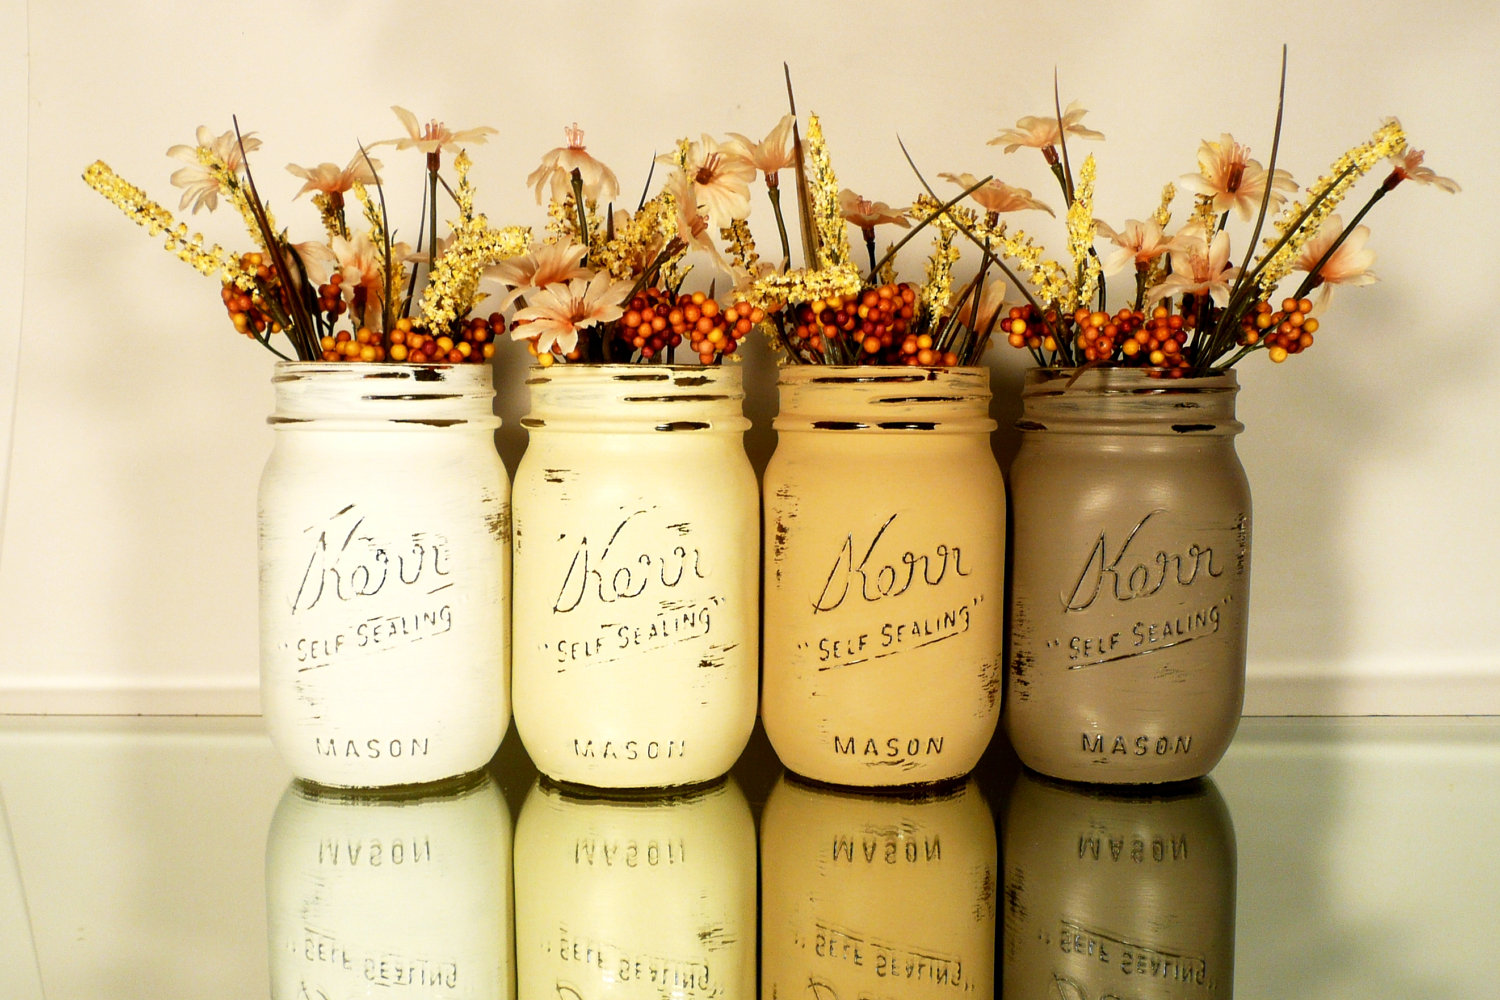 marvellous thanksgiving office decorations | ~ delicious decor ~: Thanksgiving table decorating ideas ...